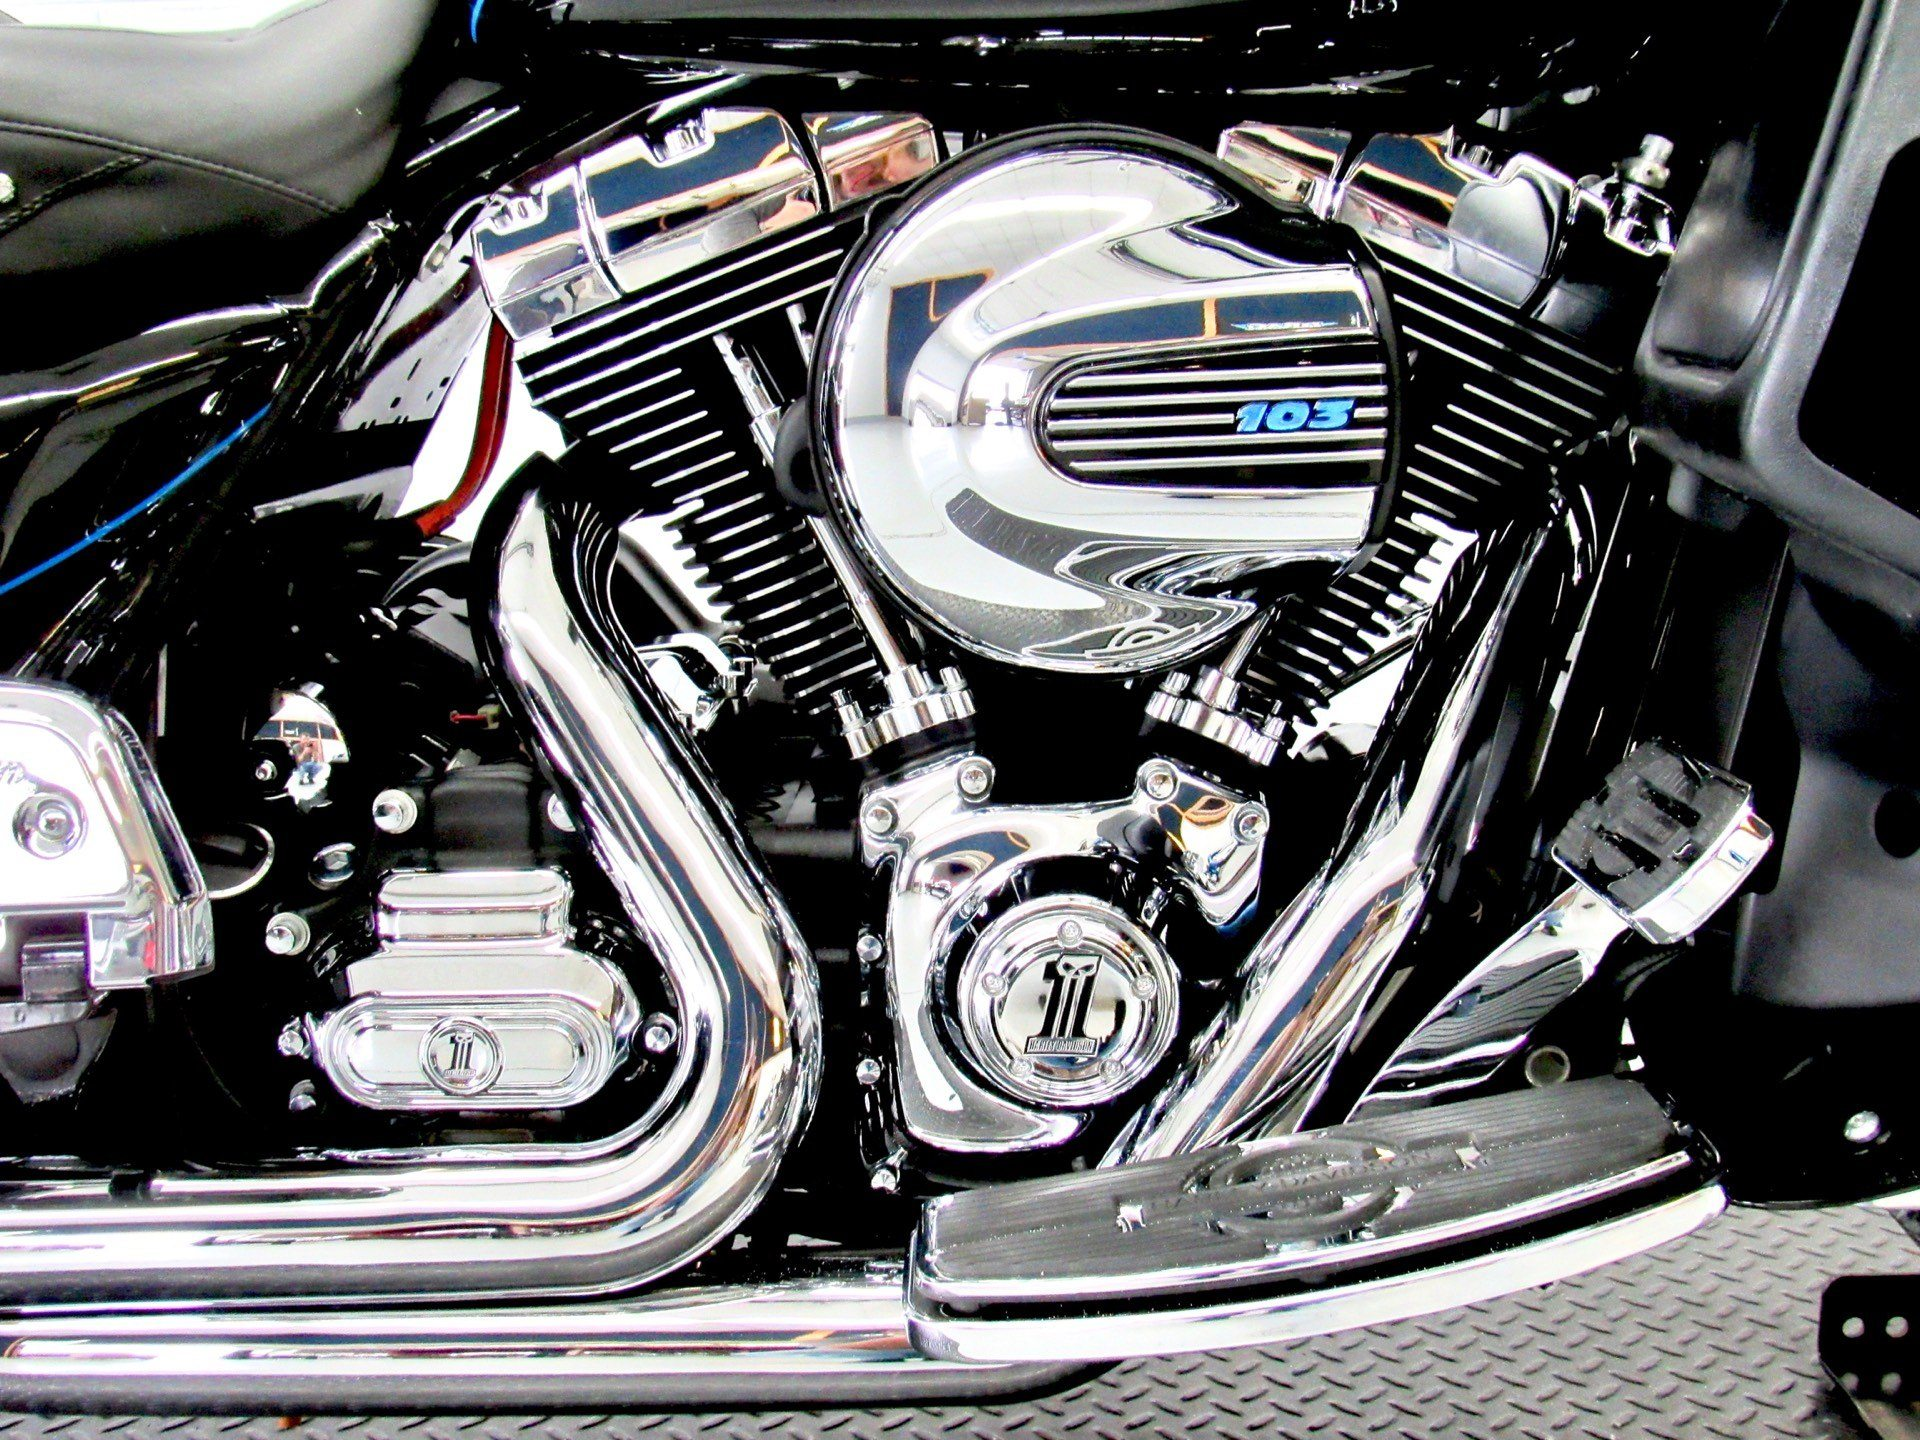 2014 Harley-Davidson Ultra Limited in Fredericksburg, Virginia - Photo 14